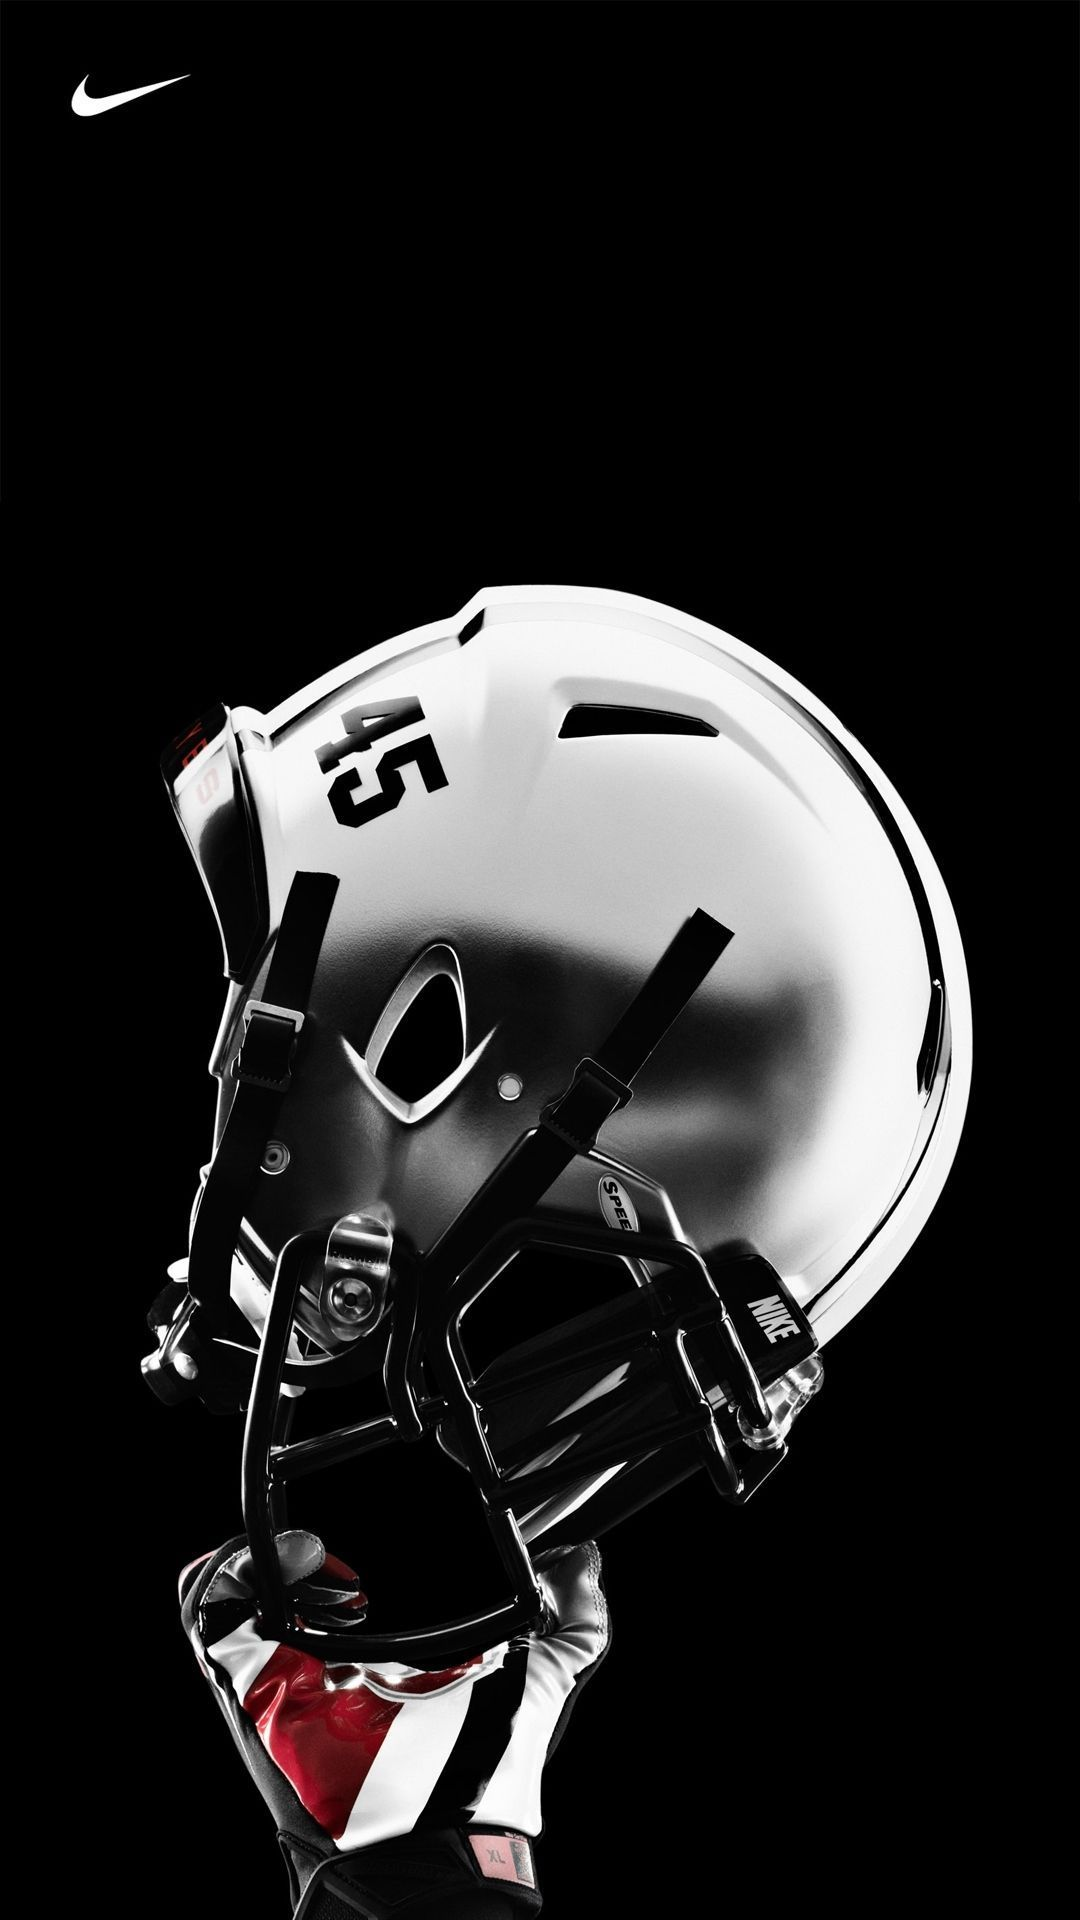 Cool Football Iphone Background In 2020 Football Wallpaper Iphone Football Wallpaper Ohio State Football